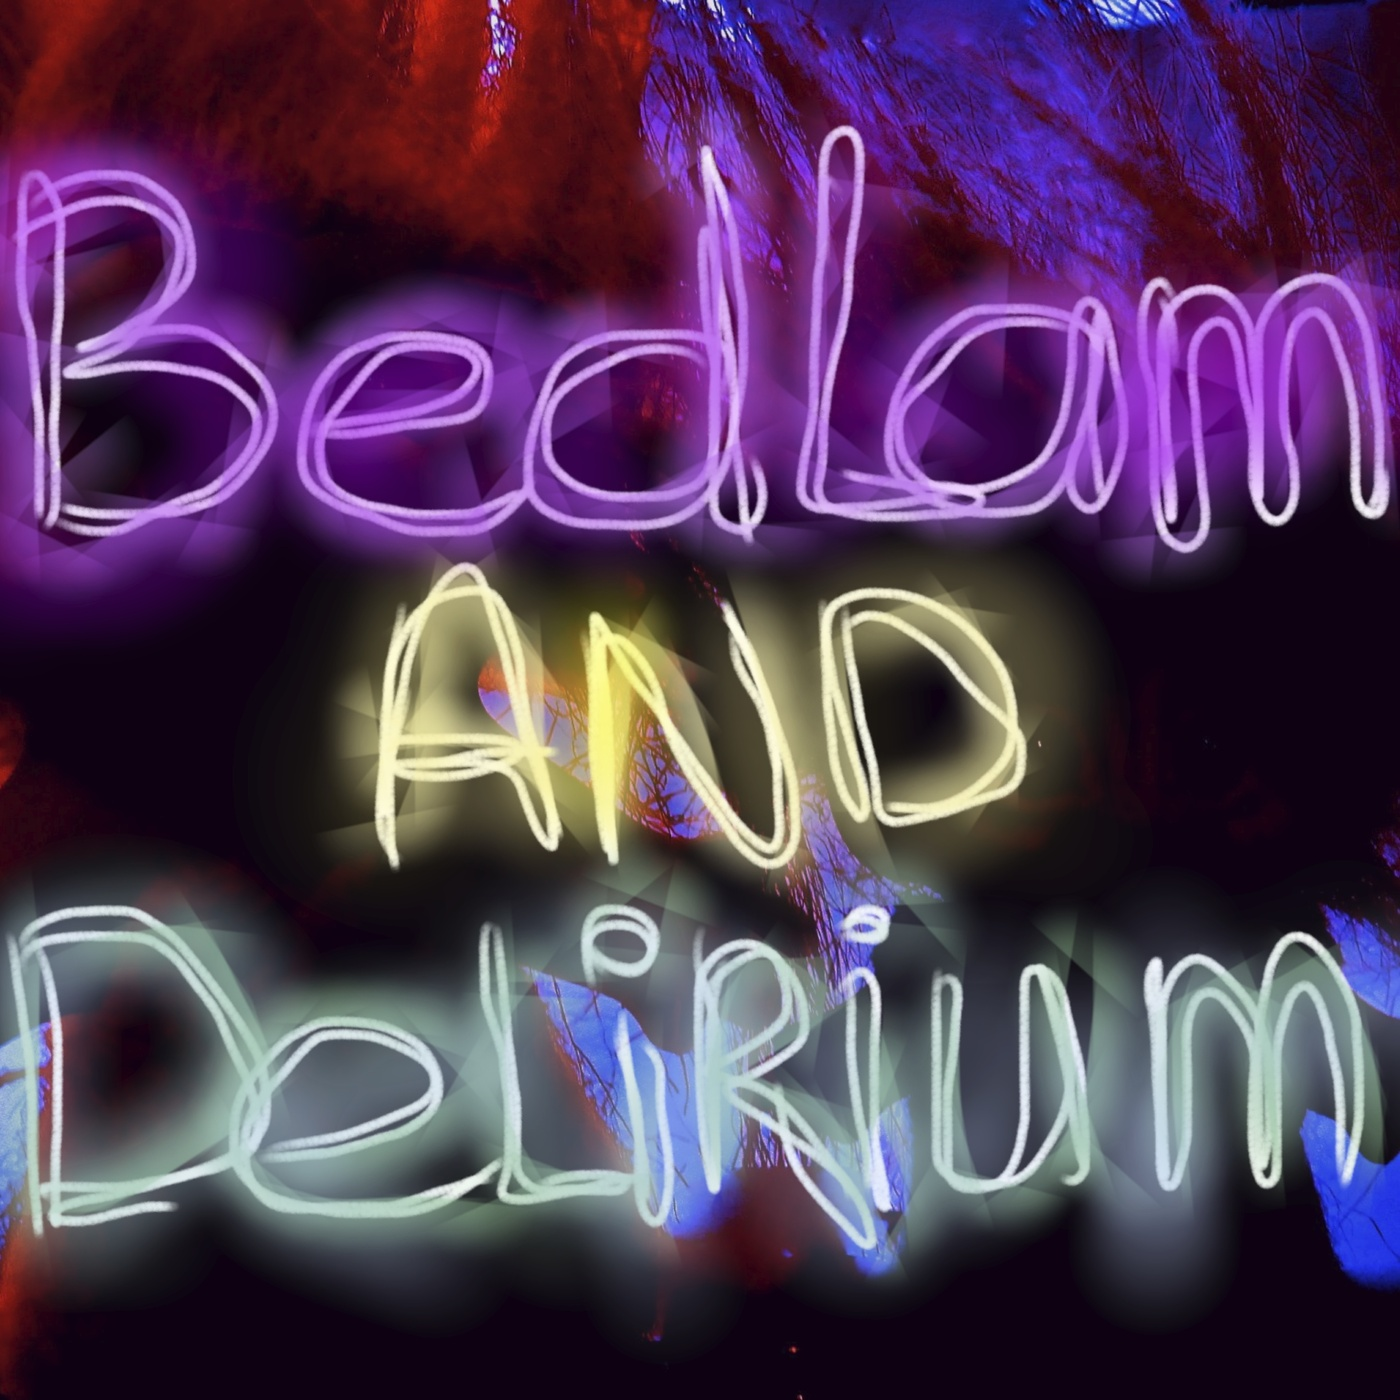 Bedlam And Delirium (B.A.D.)